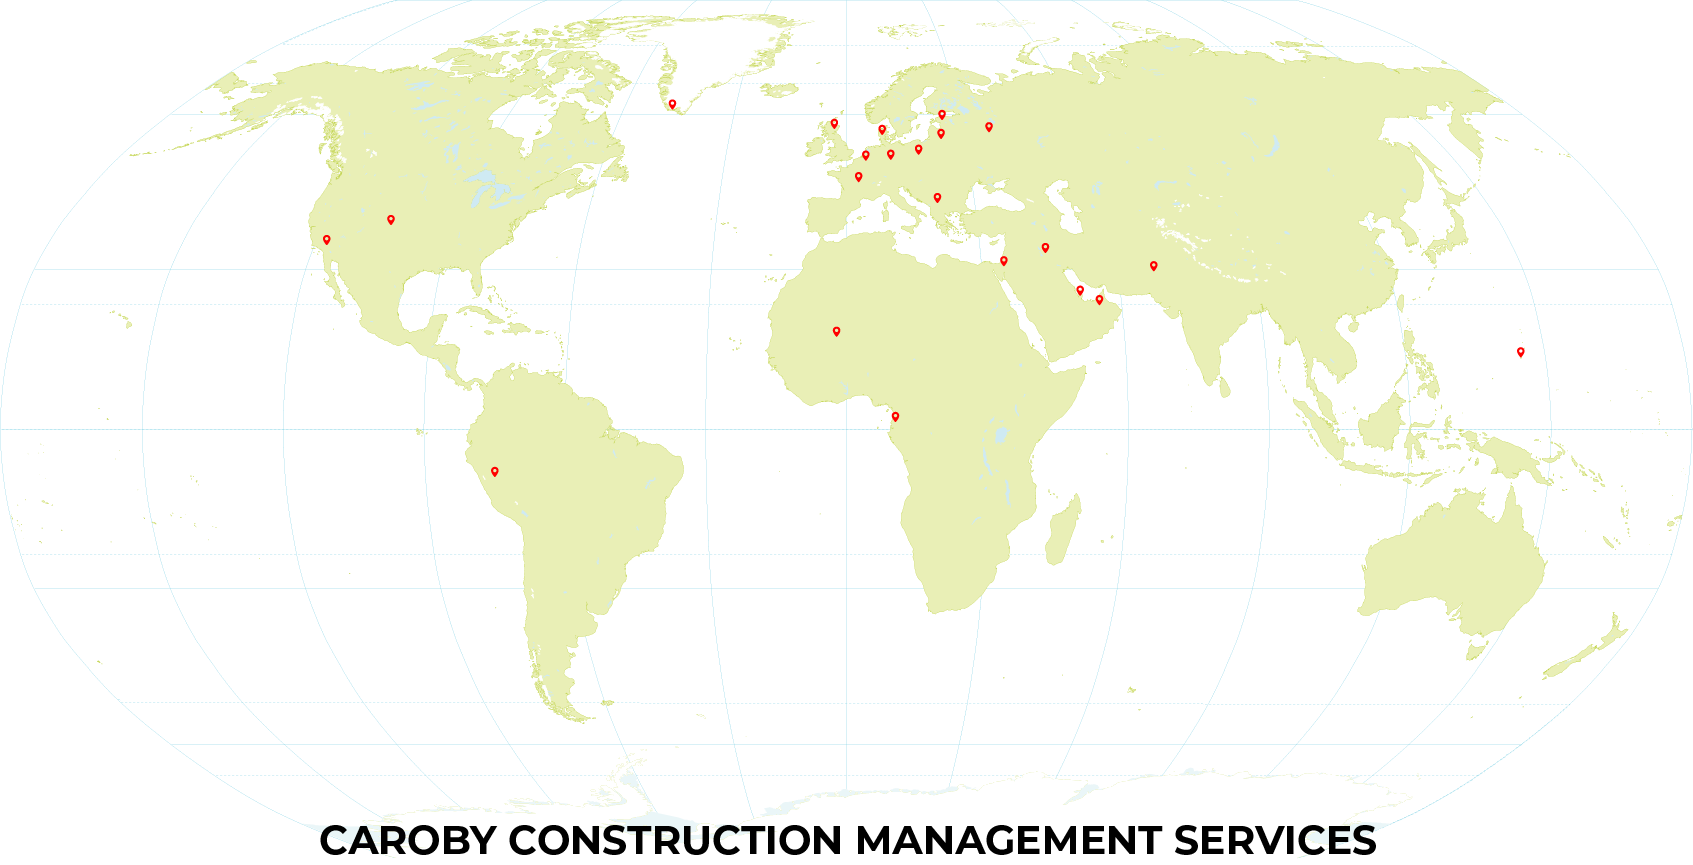 Caroby – Caroby Construction Management